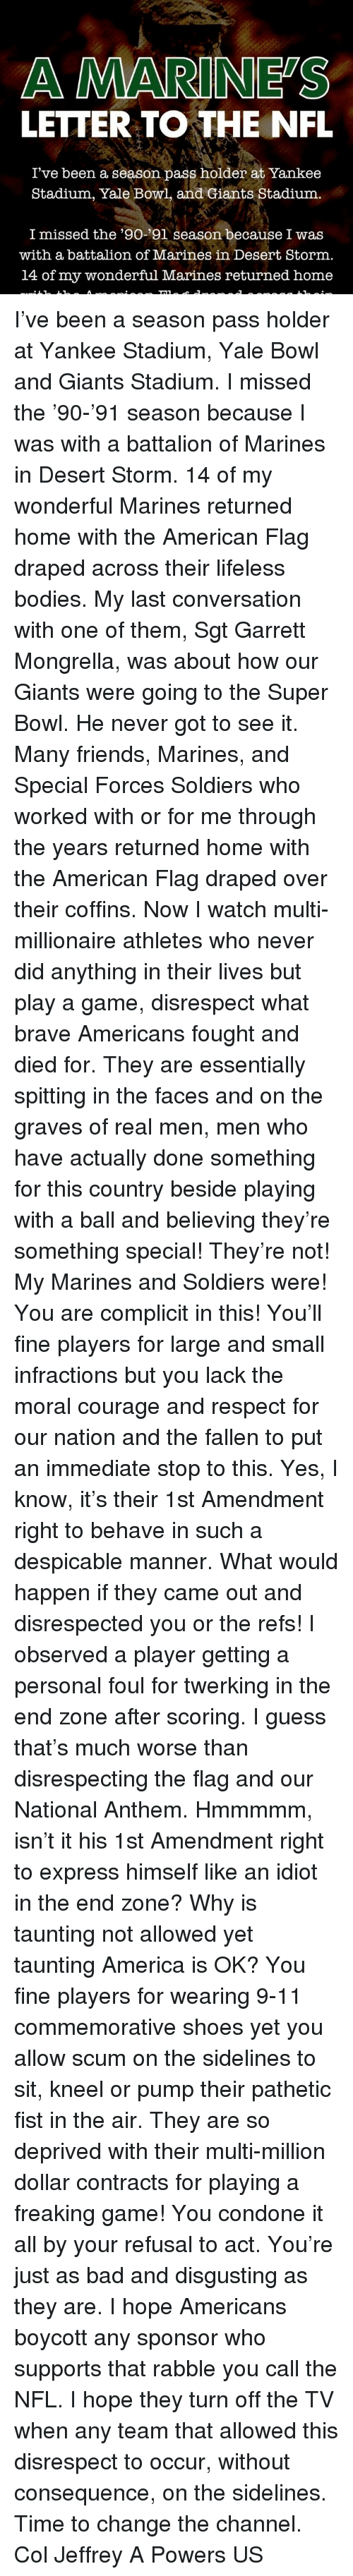 Yaling: A MARINES  LETTER TO THE NFL  I've been a season pass holder at Yankee  Stadium, Yale Bowl, and Giants Stadium  I missed the '90-'91 season because I was  with a battalion of Marines in Desert Storm,  14 of my wonderful Marines returned home I've been a season pass holder at Yankee Stadium, Yale Bowl and Giants Stadium. I missed the '90-'91 season because I was with a battalion of Marines in Desert Storm. 14 of my wonderful Marines returned home with the American Flag draped across their lifeless bodies. My last conversation with one of them, Sgt Garrett Mongrella, was about how our Giants were going to the Super Bowl. He never got to see it. Many friends, Marines, and Special Forces Soldiers who worked with or for me through the years returned home with the American Flag draped over their coffins. Now I watch multi-millionaire athletes who never did anything in their lives but play a game, disrespect what brave Americans fought and died for. They are essentially spitting in the faces and on the graves of real men, men who have actually done something for this country beside playing with a ball and believing they're something special! They're not! My Marines and Soldiers were! You are complicit in this! You'll fine players for large and small infractions but you lack the moral courage and respect for our nation and the fallen to put an immediate stop to this. Yes, I know, it's their 1st Amendment right to behave in such a despicable manner. What would happen if they came out and disrespected you or the refs! I observed a player getting a personal foul for twerking in the end zone after scoring. I guess that's much worse than disrespecting the flag and our National Anthem. Hmmmmm, isn't it his 1st Amendment right to express himself like an idiot in the end zone? Why is taunting not allowed yet taunting America is OK? You fine players for wearing 9-11 commemorative shoes yet you allow scum on the sidelines to sit, kneel or pump their pathetic fist in the air. 